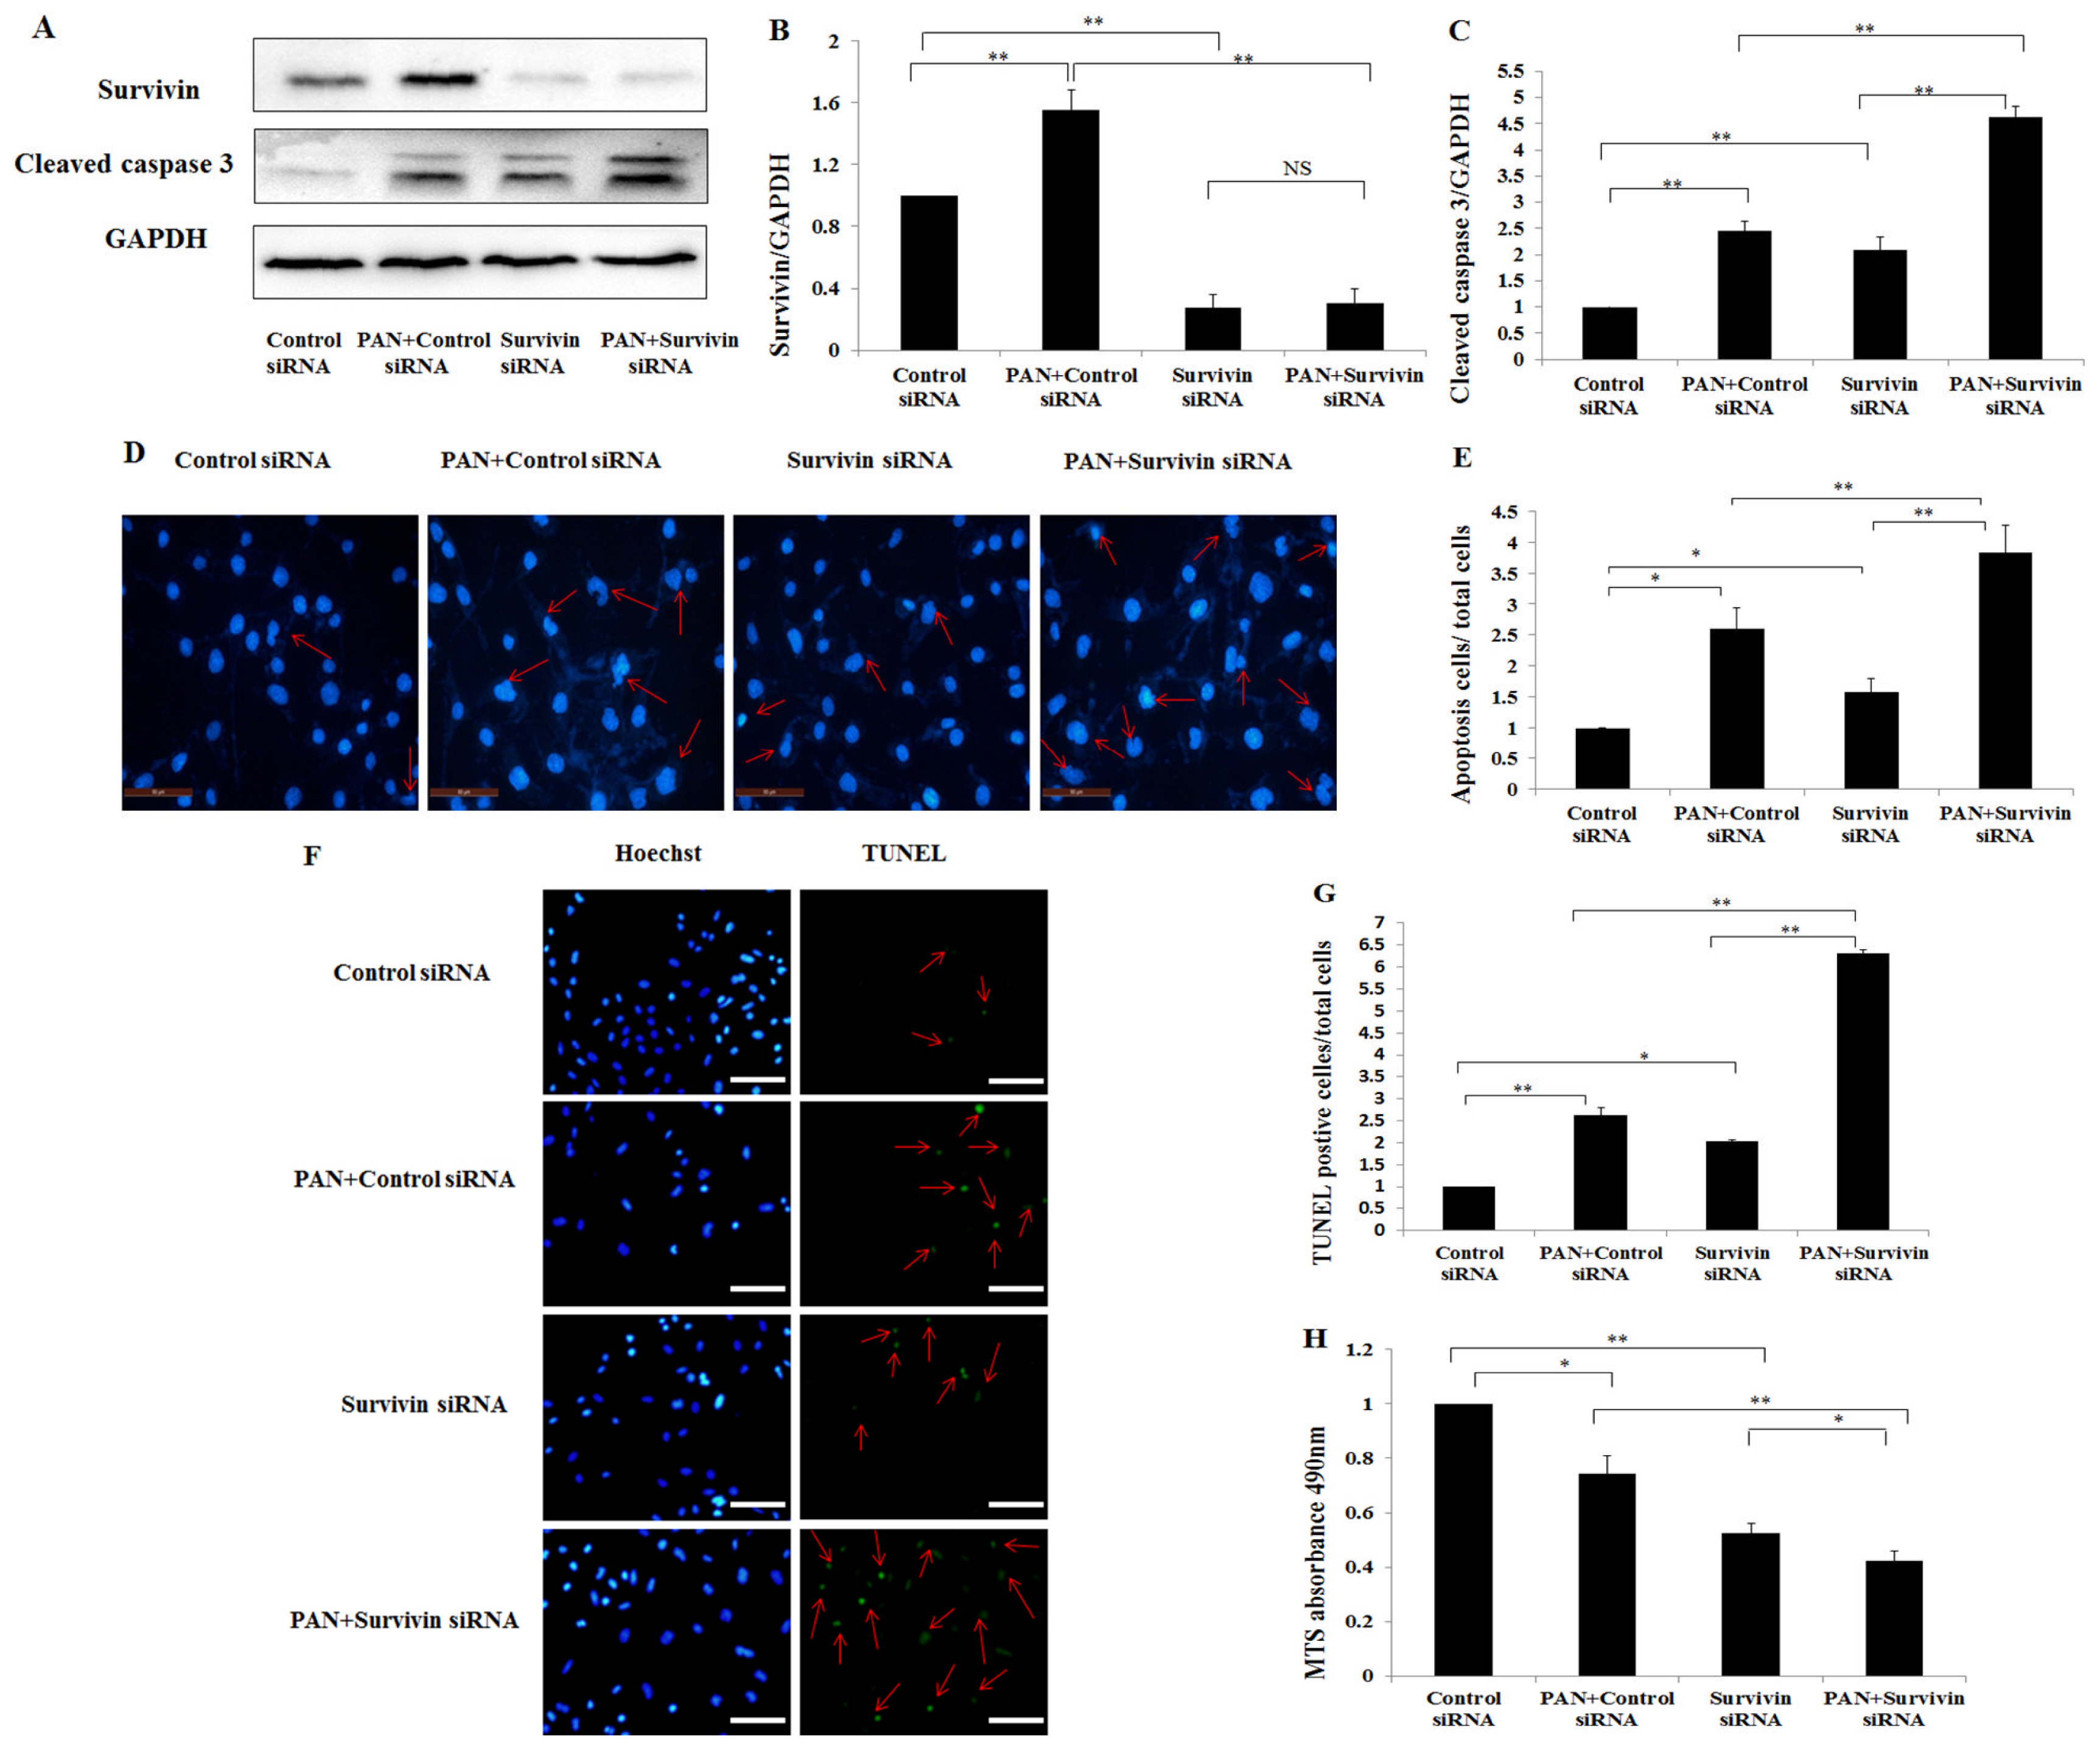 IJMS   Free Full-Text   The Role of Survivin in Podocyte